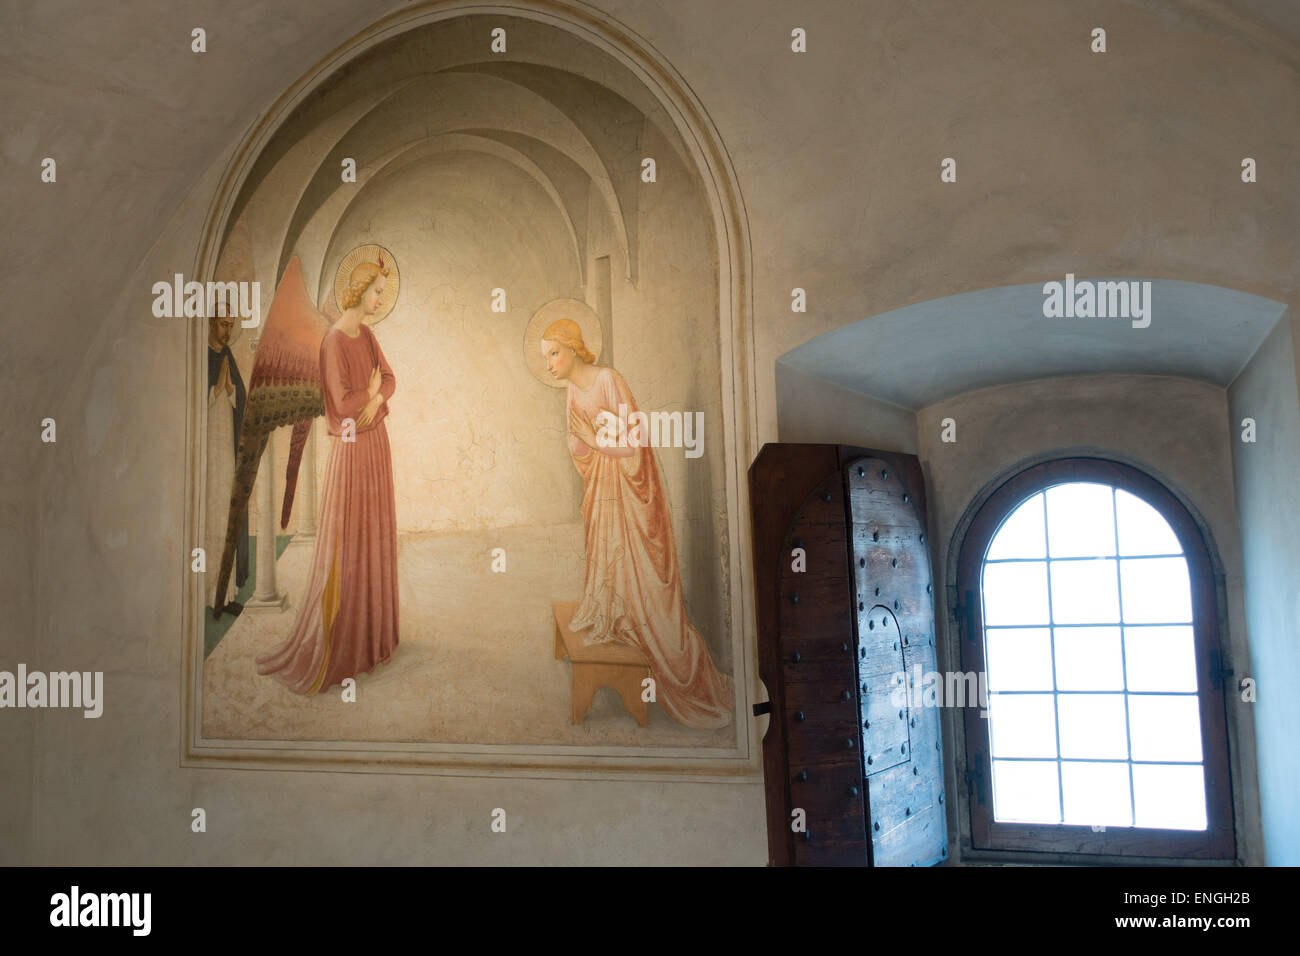 Fresco of the Annunciation by Fra Angelico in a cell in the Convent ...